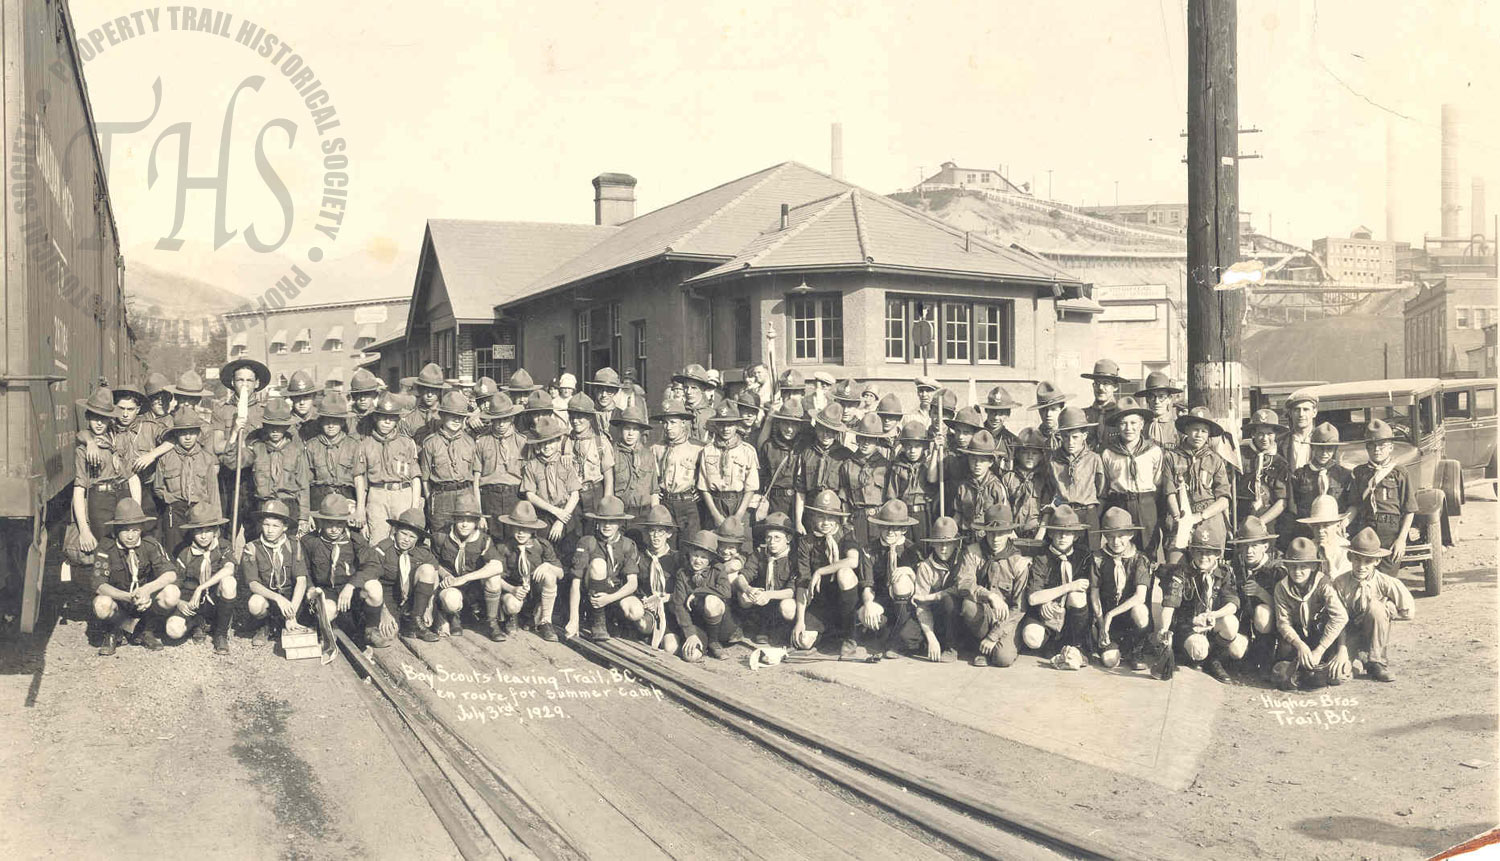 Boy Scouts, heading to Nelson for camp, train station, downtown Trail (Hughes) - 1929